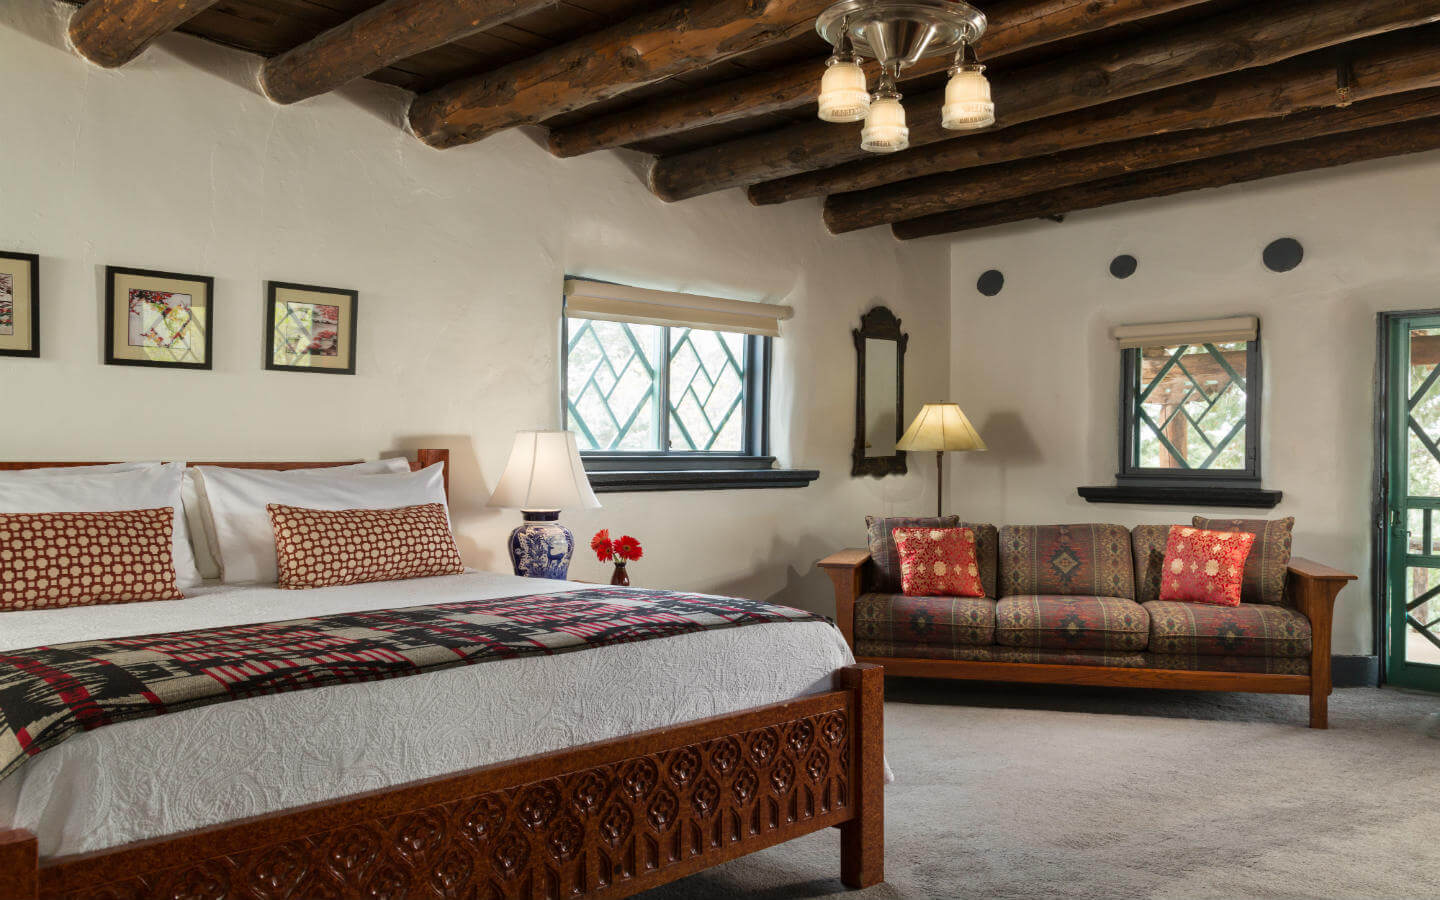 Santa Fe New Mexico Bed and Breakfast - Witter Bynner Room